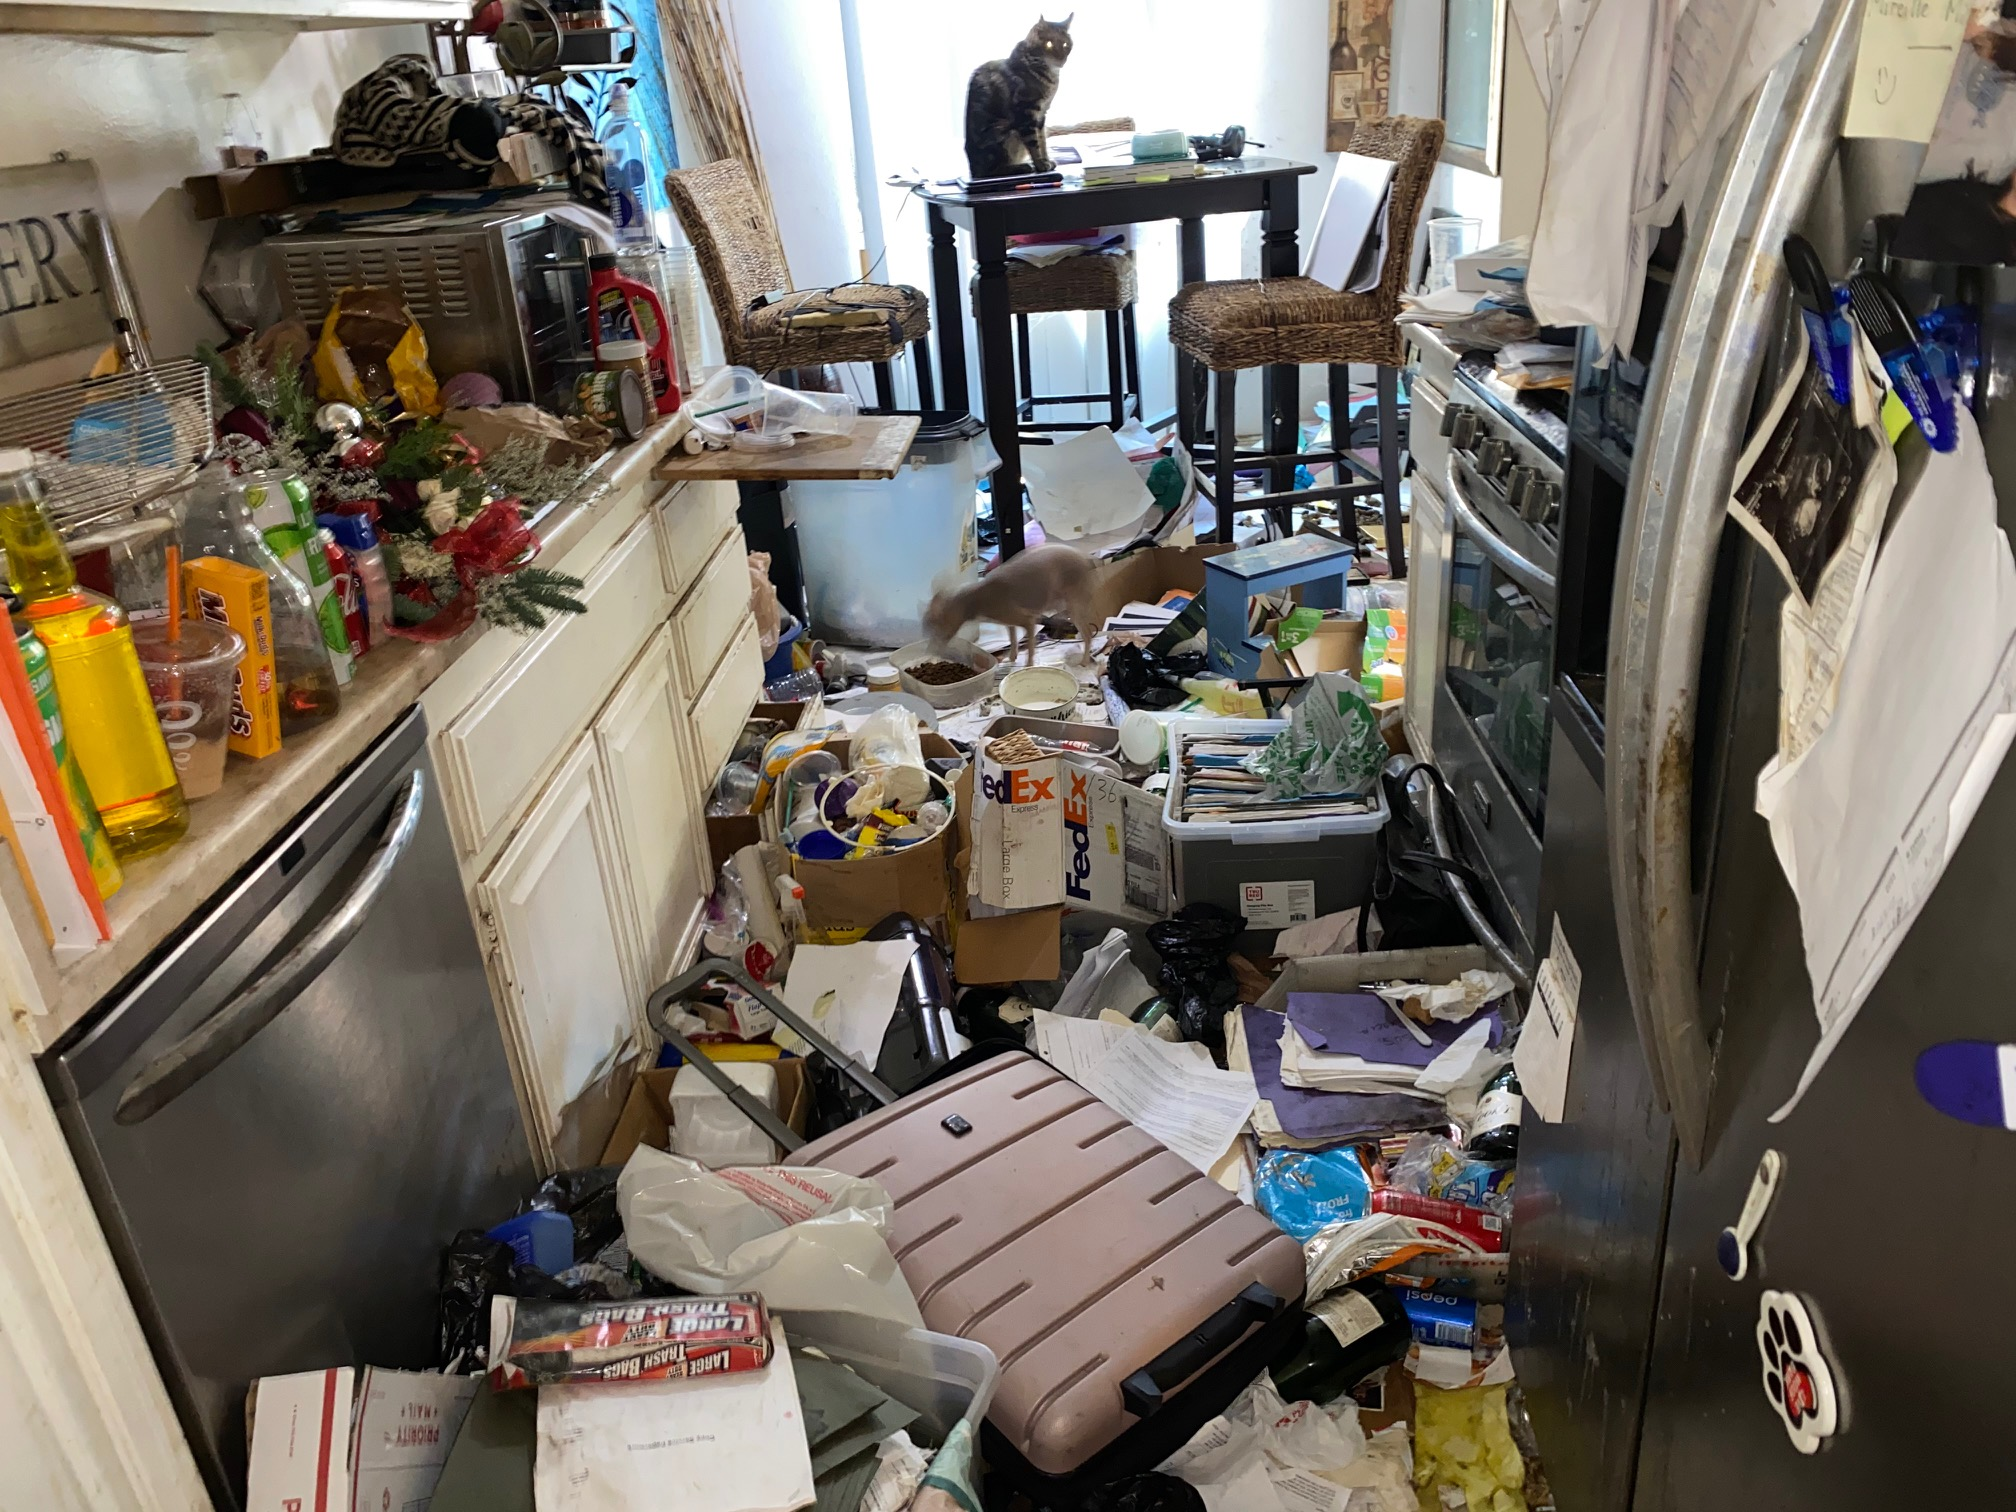 Image shows a kitchen area filled with trash, clutter and even cats. It's near impossible to move around the area, let alone use the kitchen stove and counters.